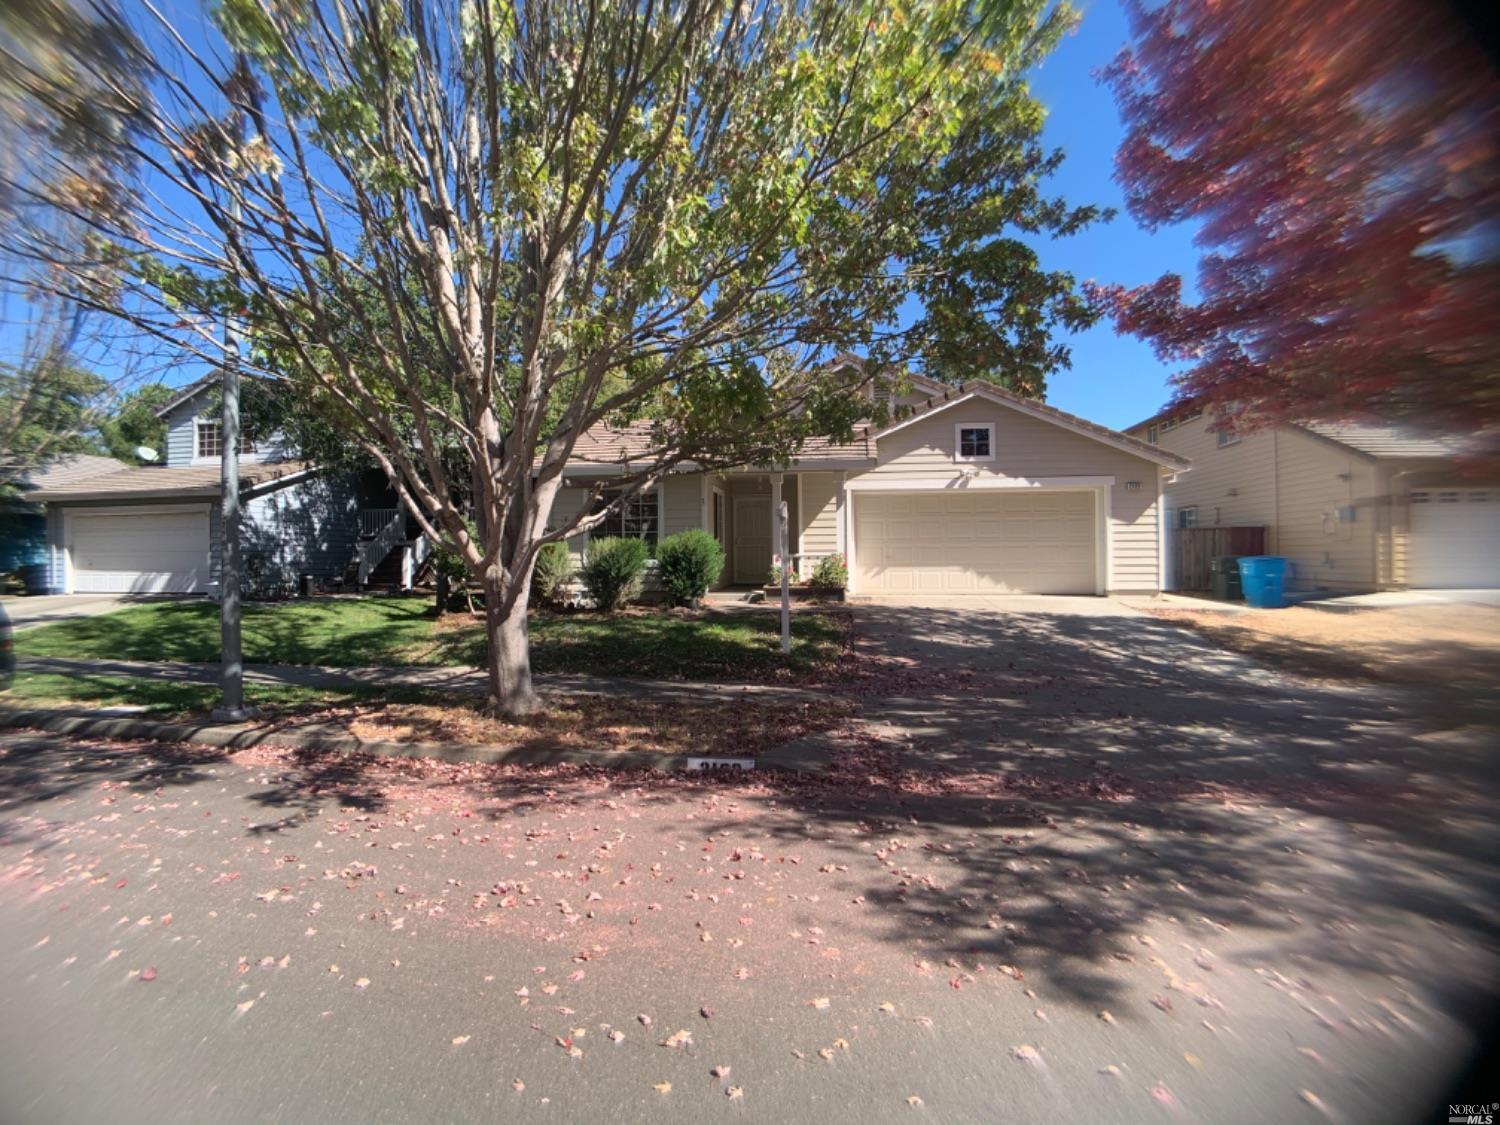 This cute 3BR/2BA home in Taylor Meadows is within walking distance to Target yet tucked away from the heavy traffic. The living/family room off the kitchen has a fireplace and a slider that goes to the back yard. The master has a walk in closet and full bath, there are two smaller bedrooms and a hall bath, an efficient kitchen with new D/W, fridge, stove and microwave, and brand new stainless sink. A large two car garage. Tenant pays utilities, takes care of front and back yards (minimal). Dog possible (- no aggressive breeds and must carry renters insurance.)